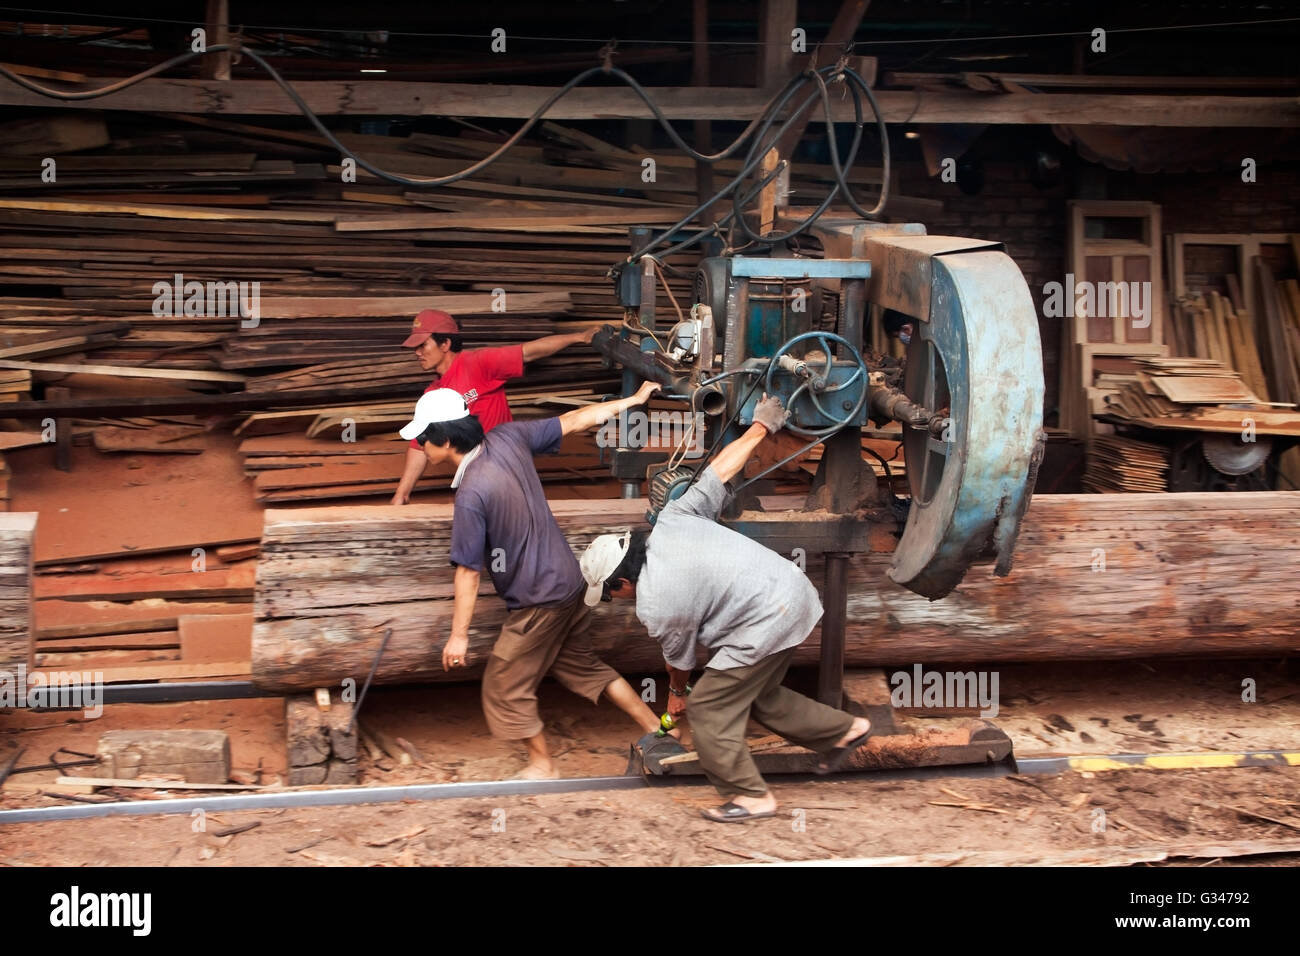 Three woodworker try to push cumbersome machine to split section of a tree trunk into plank at sawmill. June 18, - Stock Image